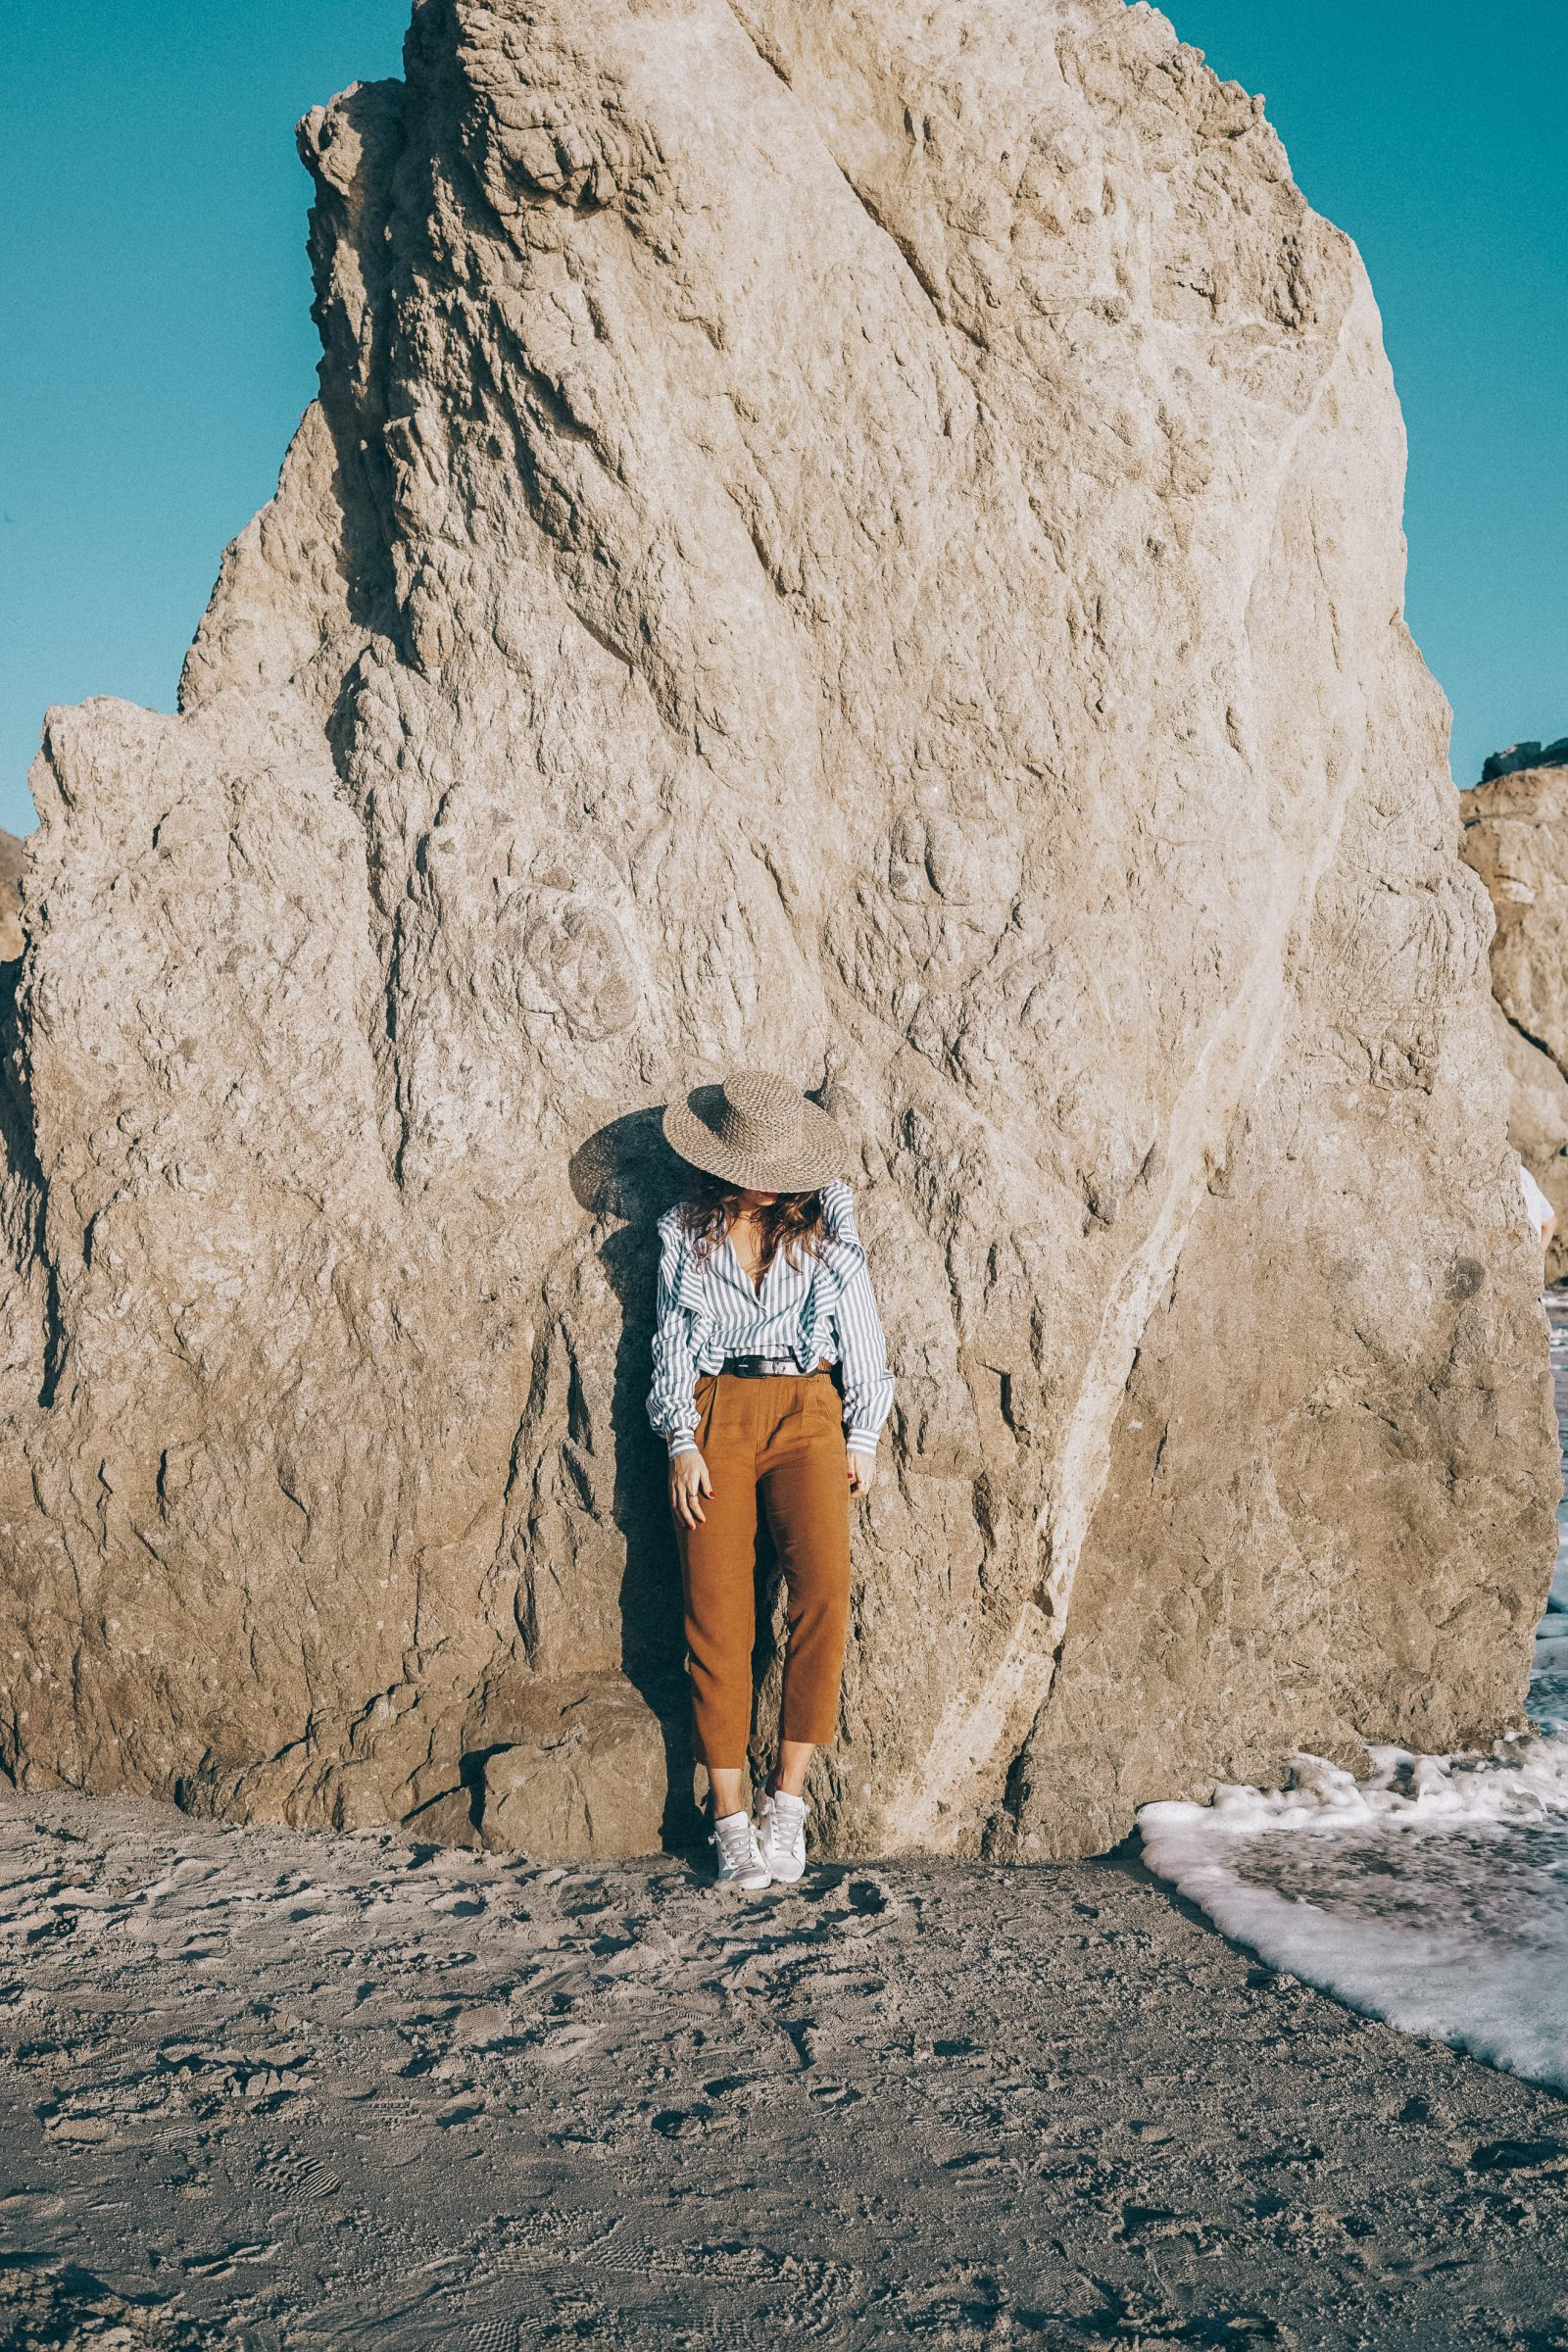 stripped_blouse-camel_trousers-lack_of_color_hat-wanderlust_jewels-matador_beach-malibu-golden_goose_sneakers-street_style-collage_vintage-117